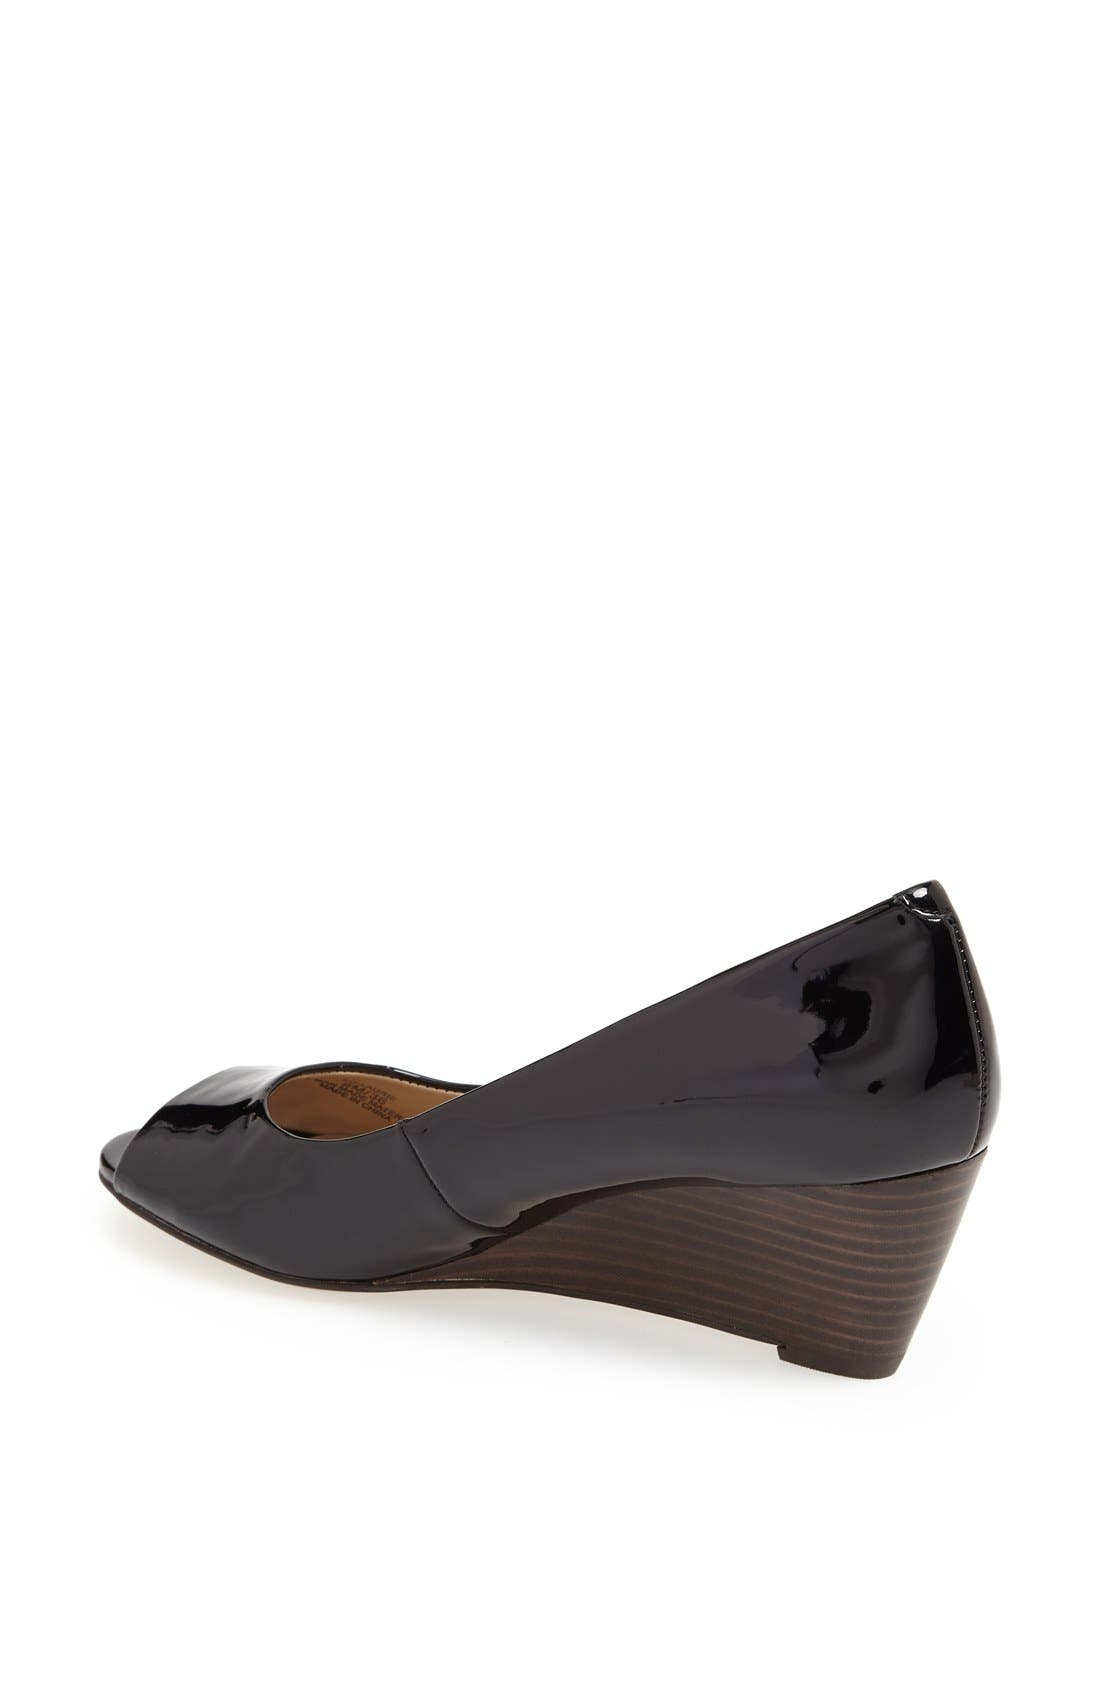 Alternate Image 2  - Sole Society 'Laurie' Wedge (Women)